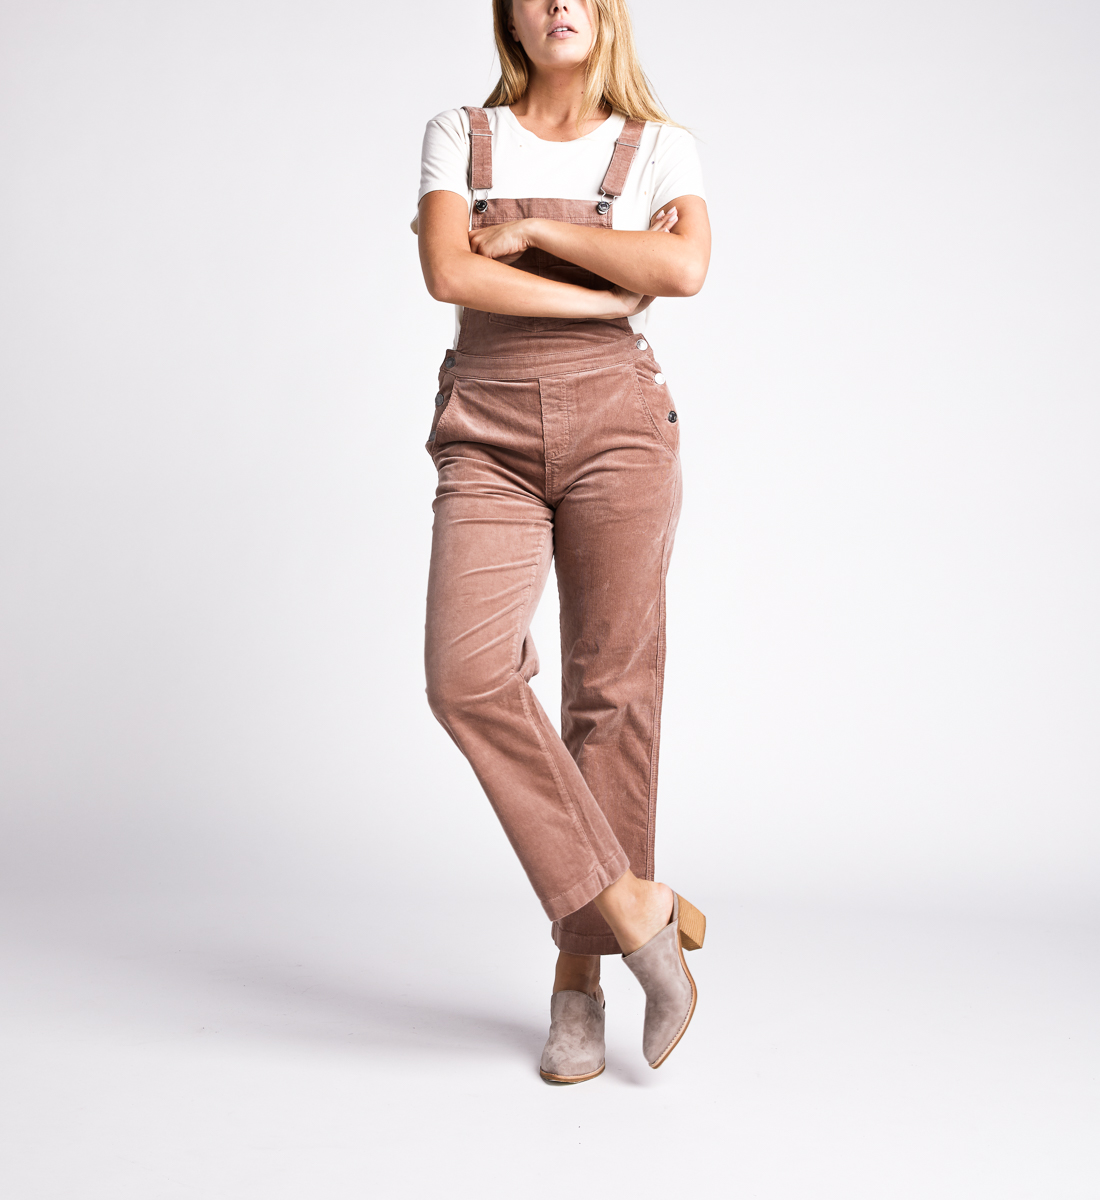 Silver Jeans Overall Straight Leg Pants